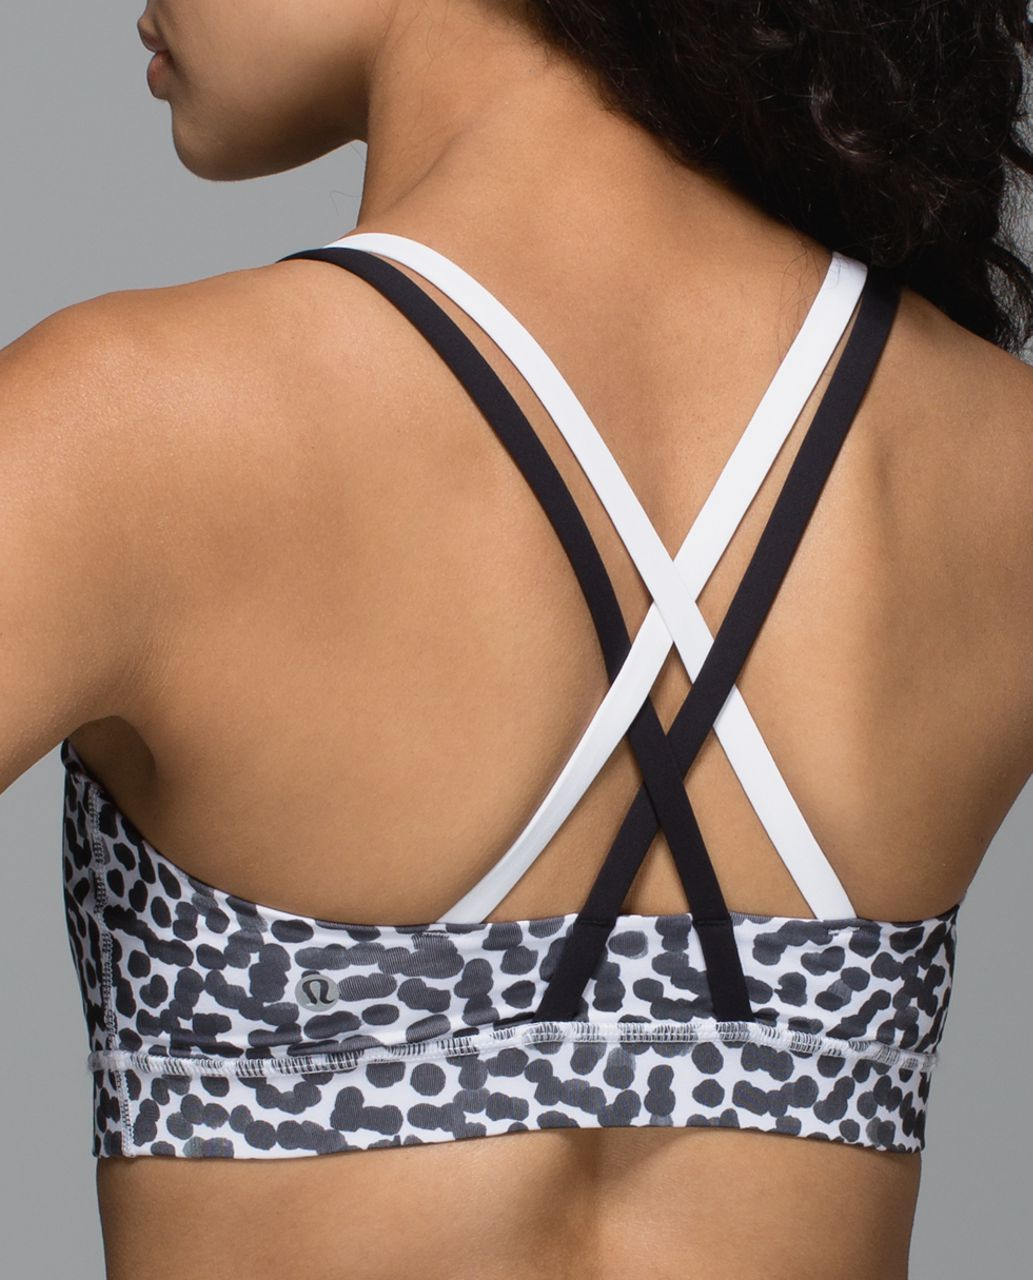 Lululemon Energy Bra - Ace Spot White Black / Black / White